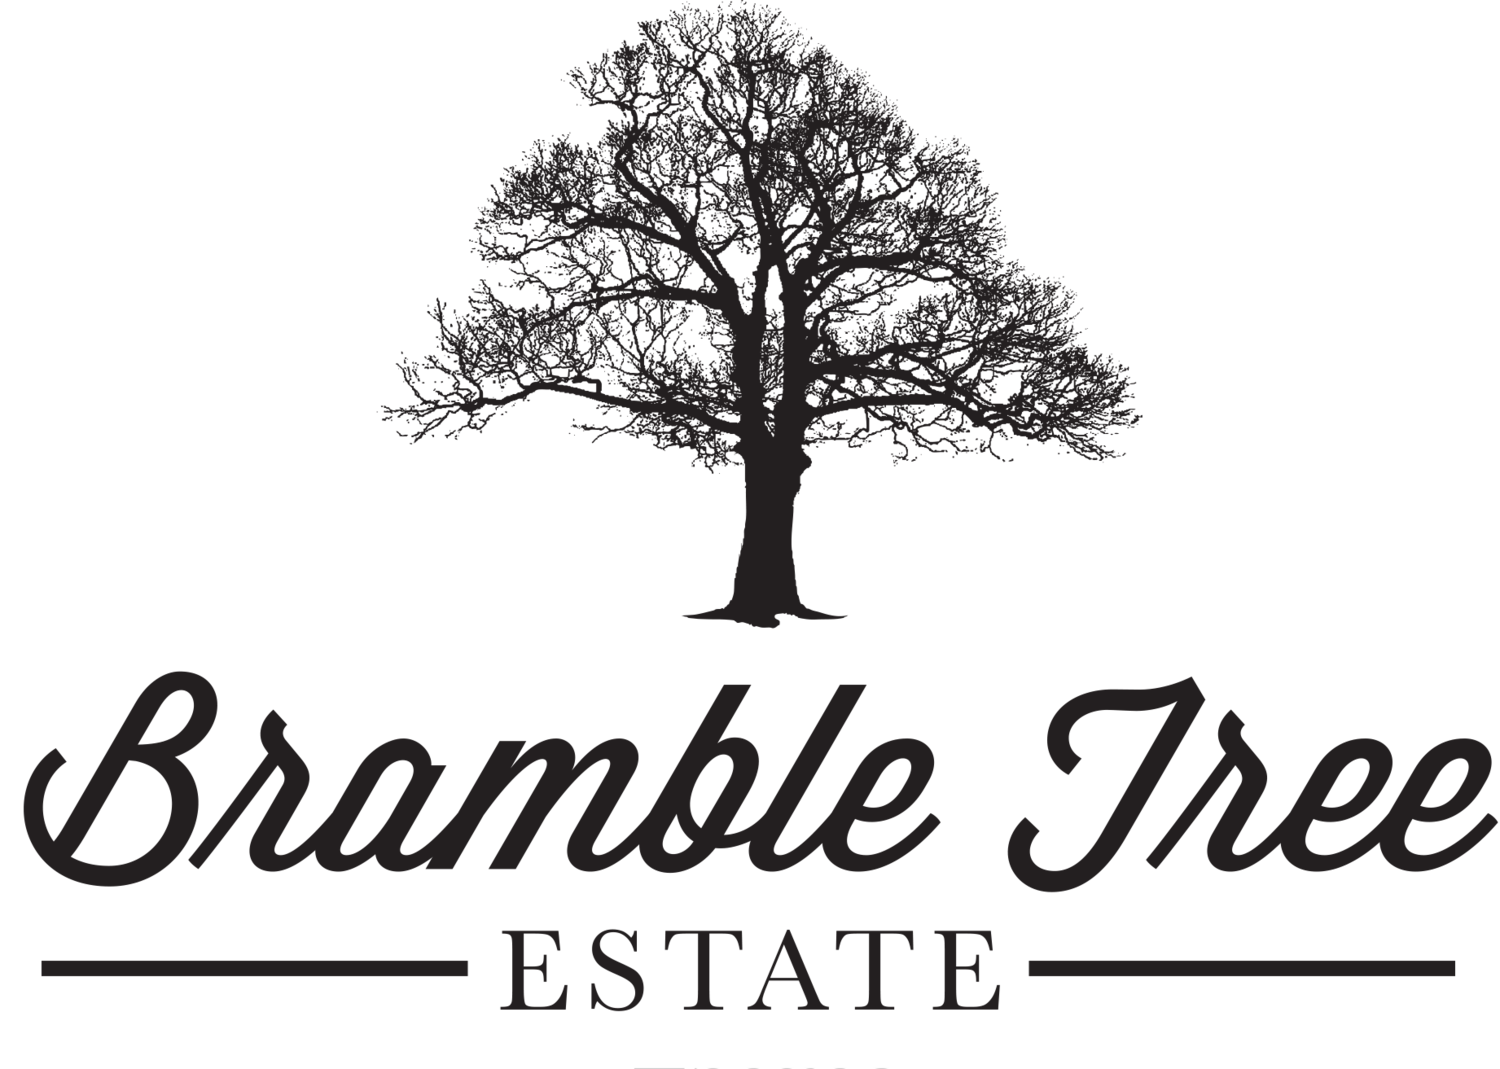 Bramble Tree Estate